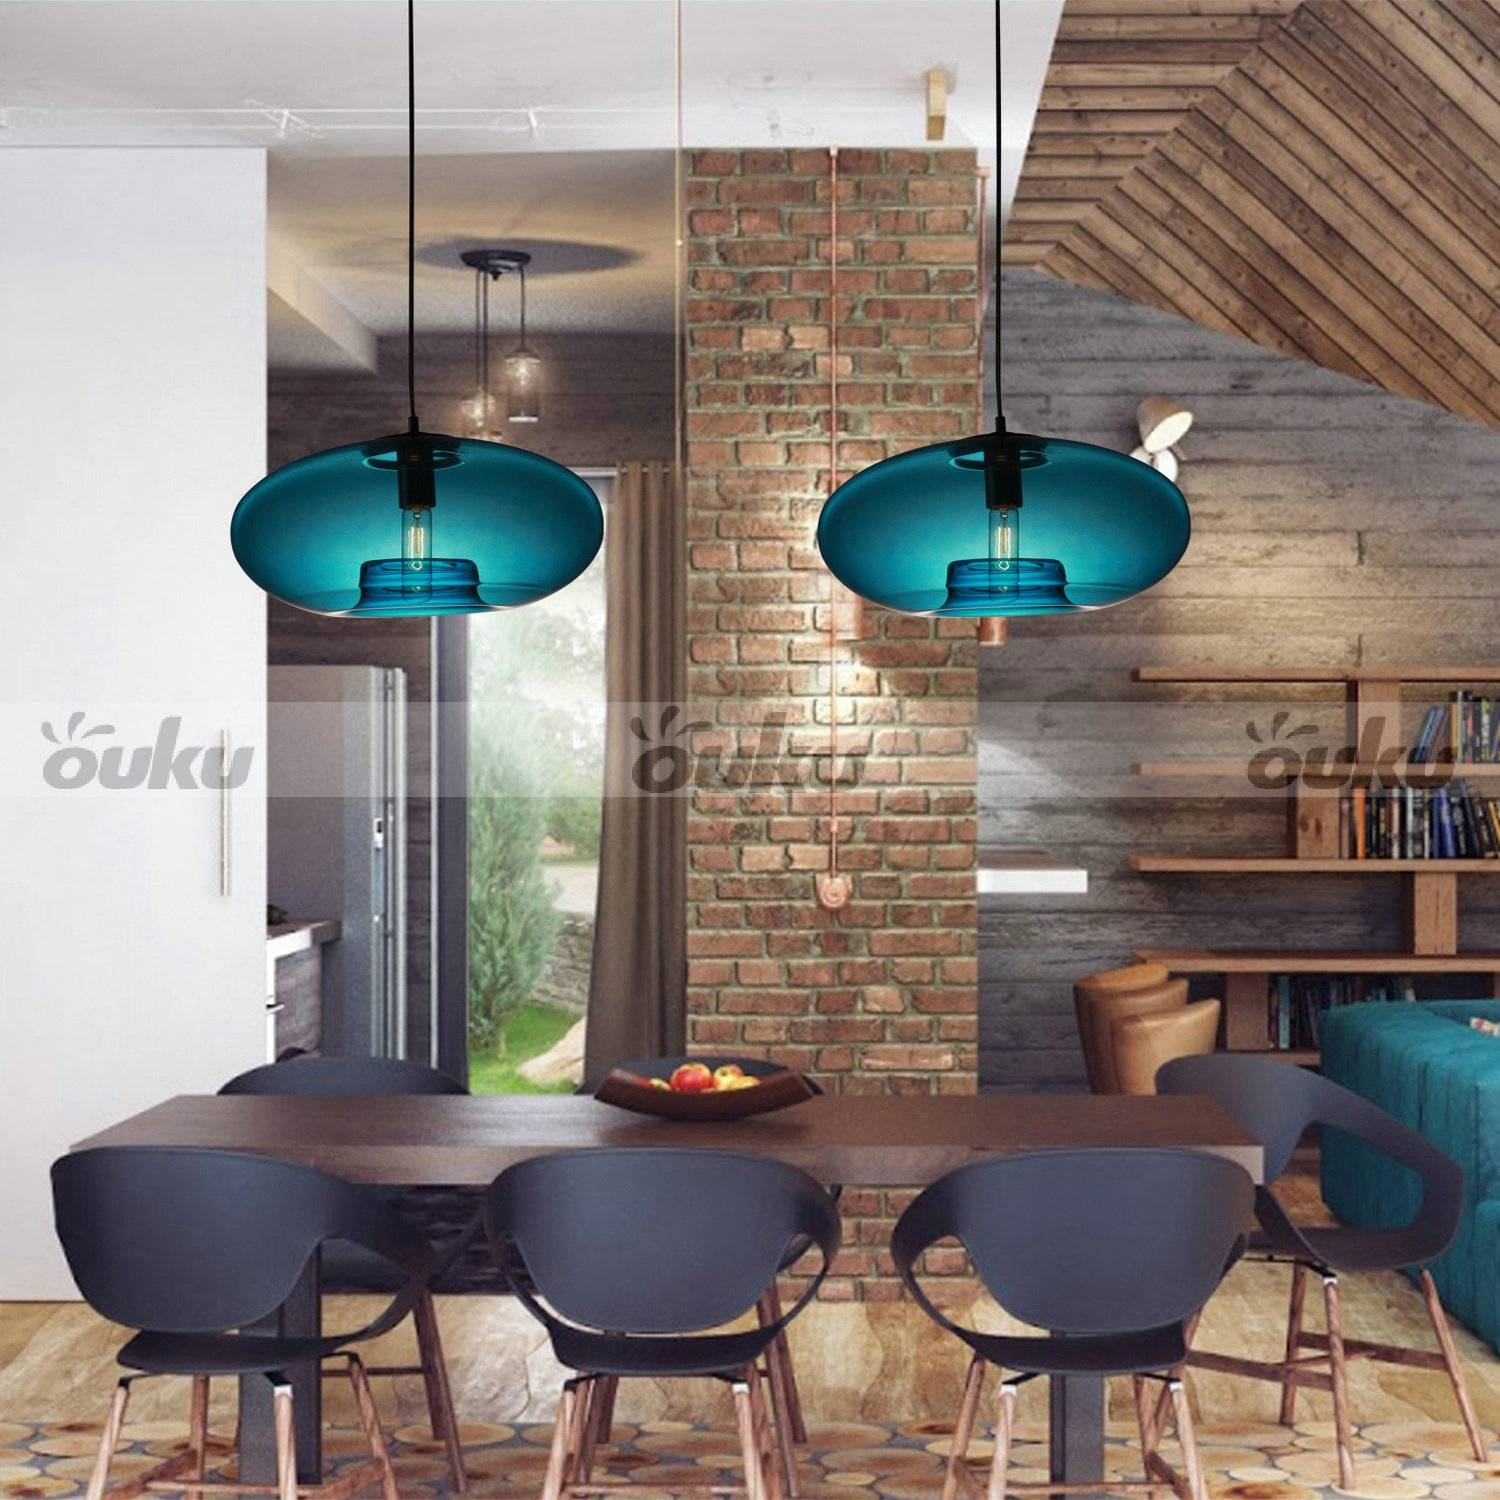 New Modern Contemporary Glass Ball Ceiling Light Lighting Fixture for Turquoise Blue Glass Pendant Lights (Image 7 of 15)